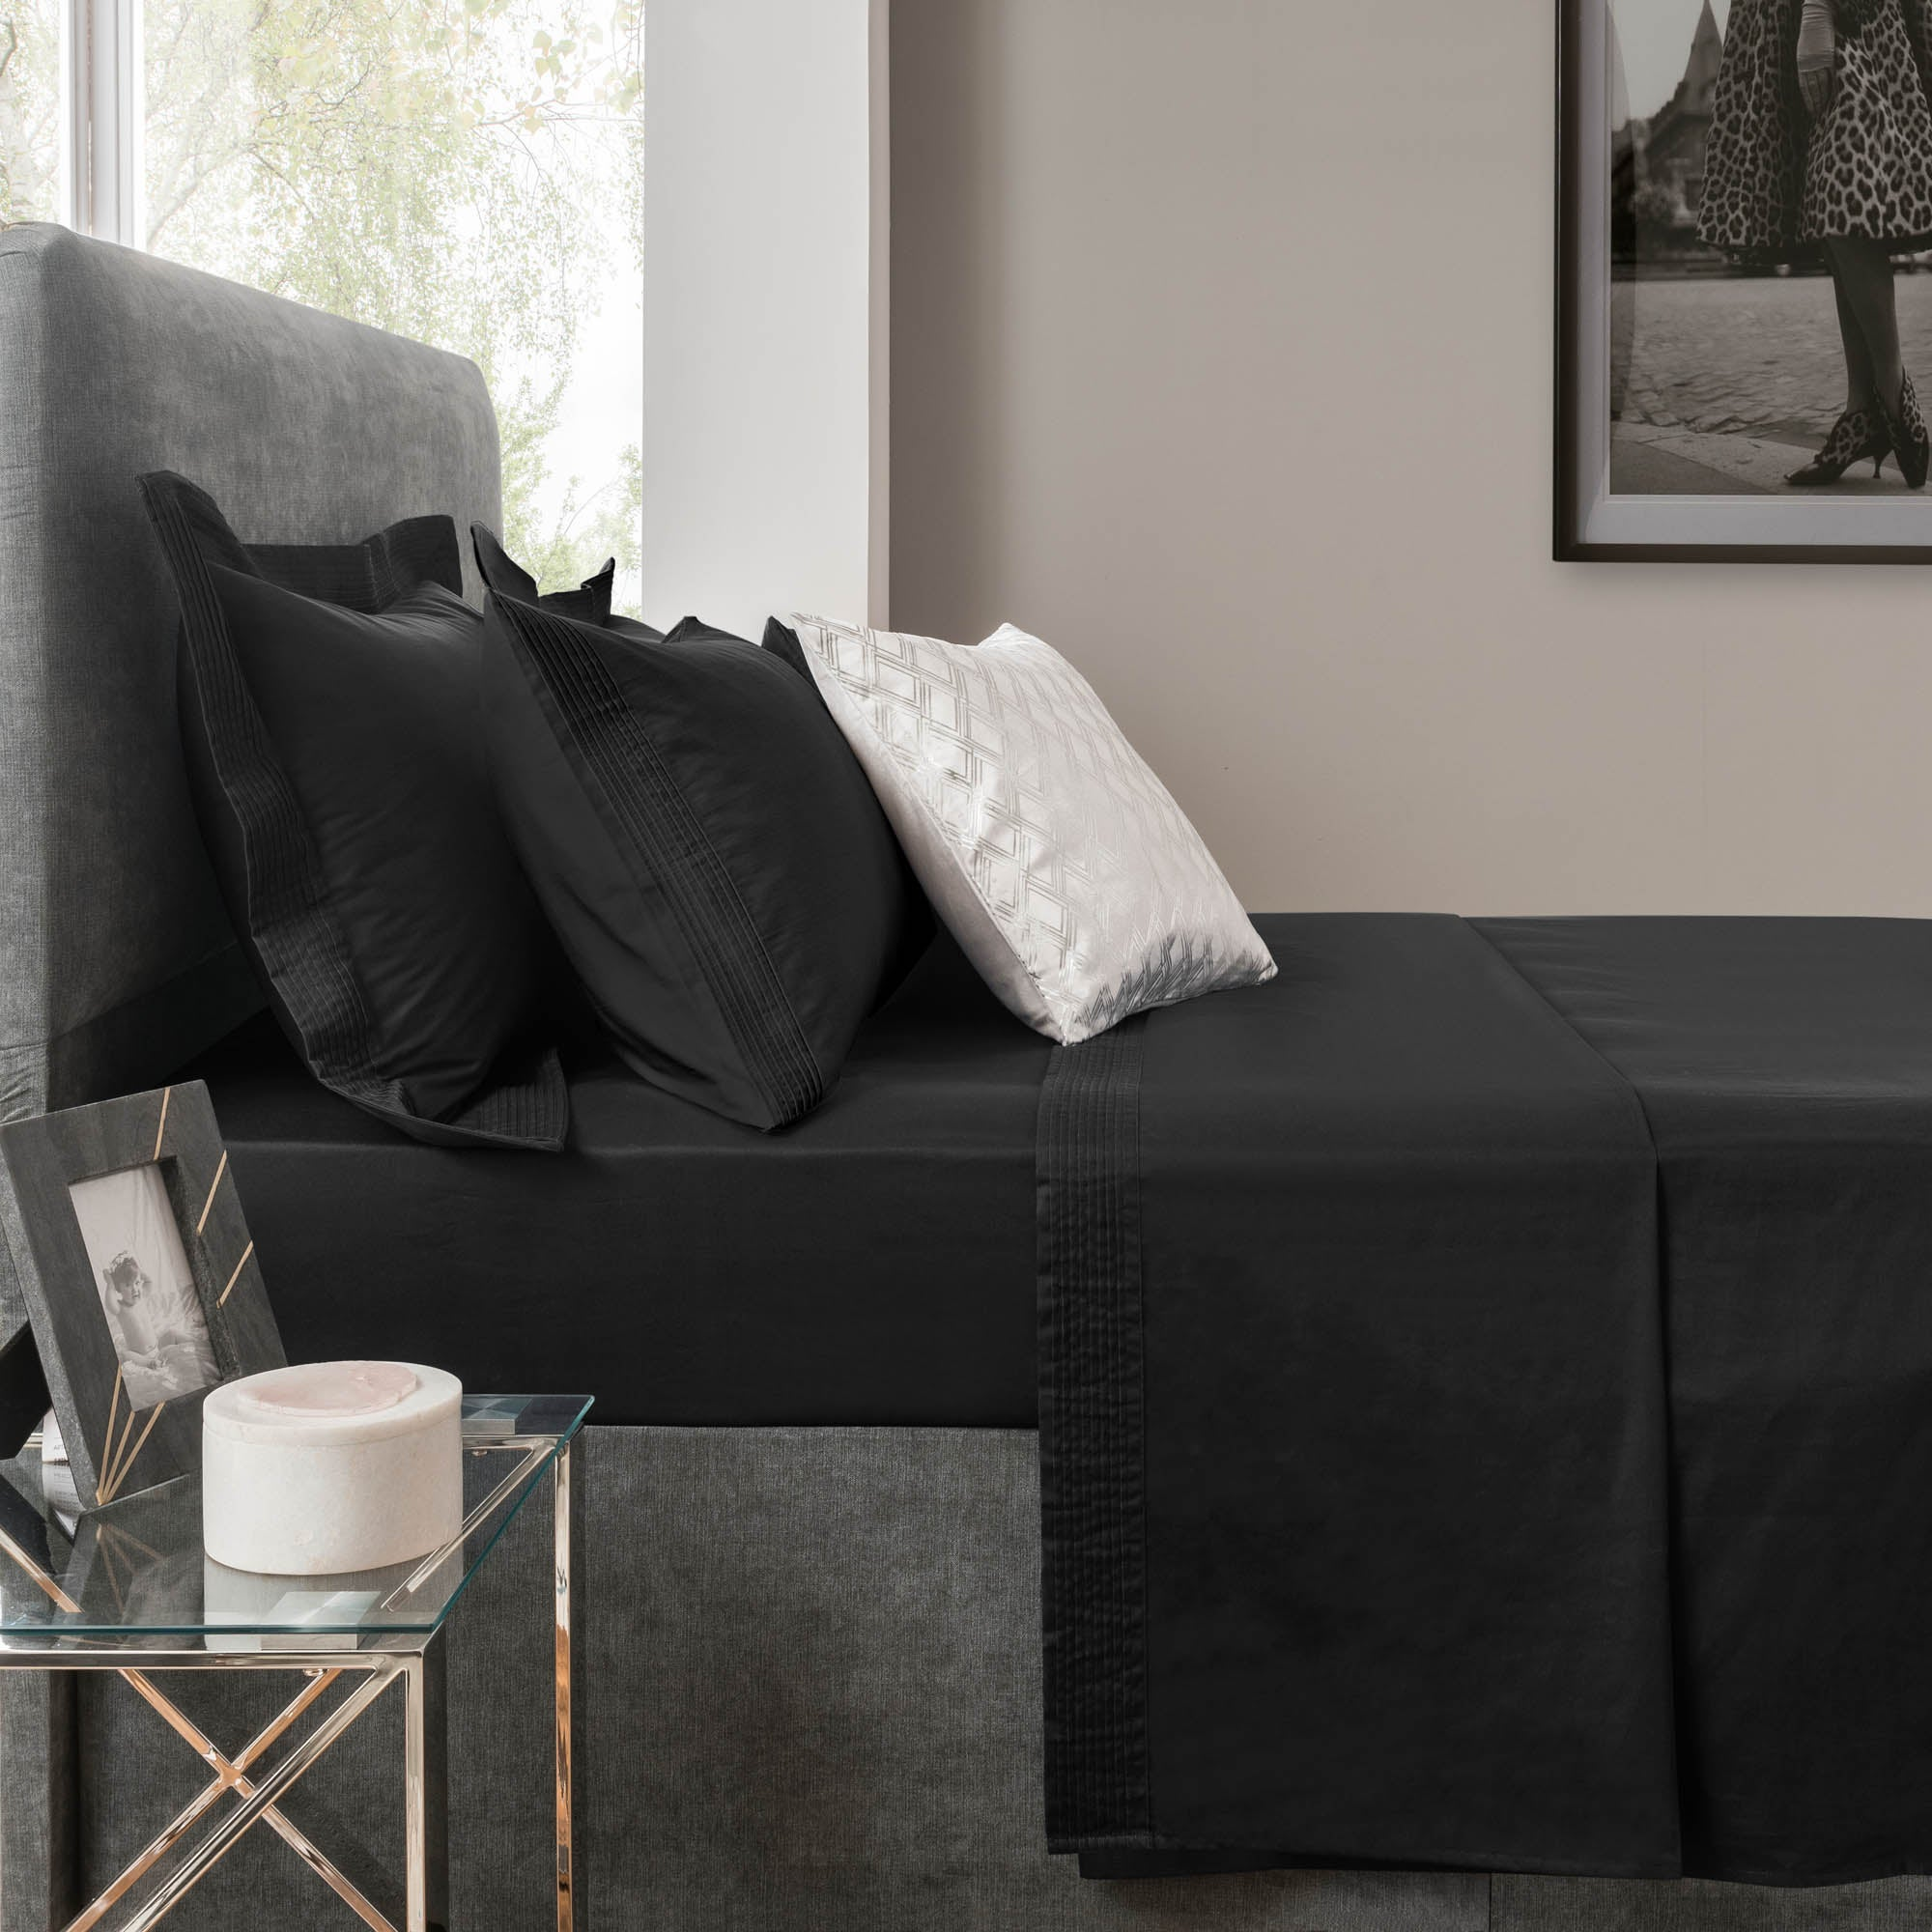 Image of 5A Fifth Avenue 300 Thread Count Modal Black Flat Sheet Panther Black